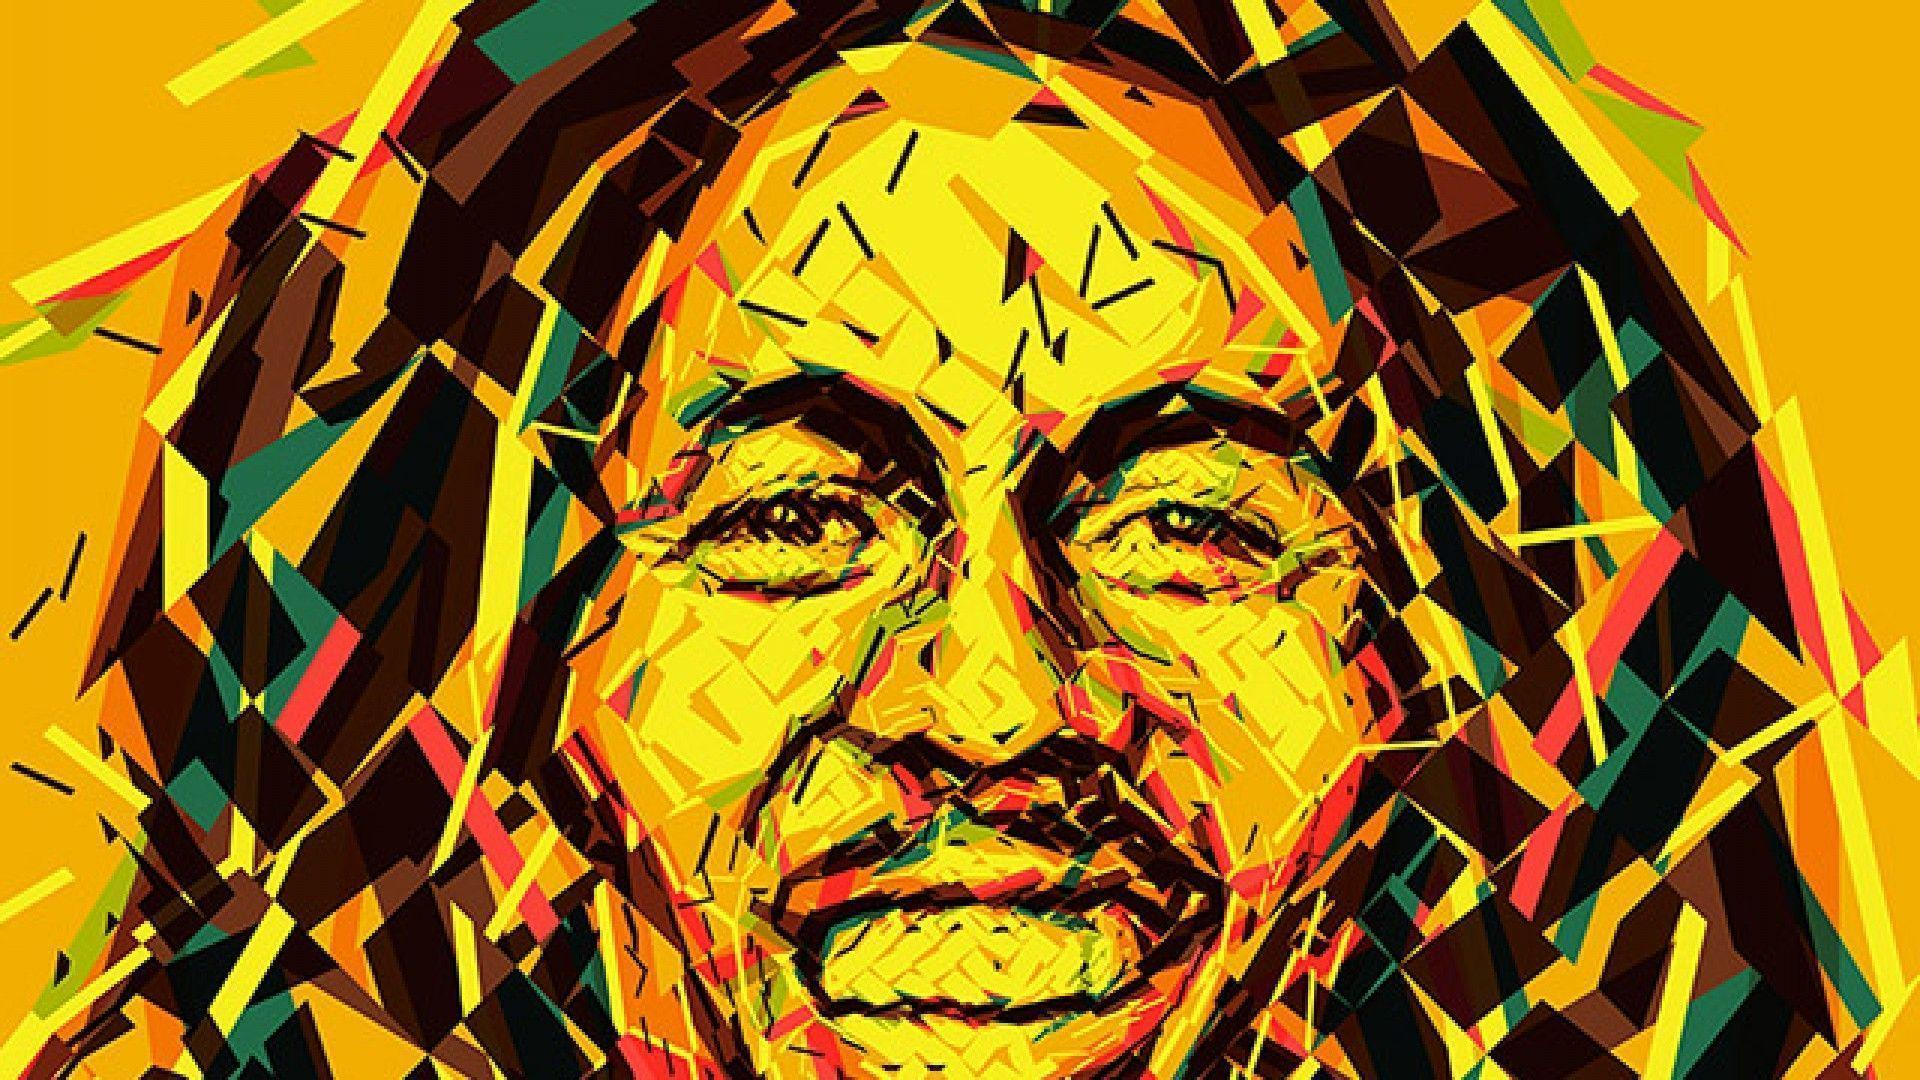 Bob Marley Wallpapers, Pictures, Image